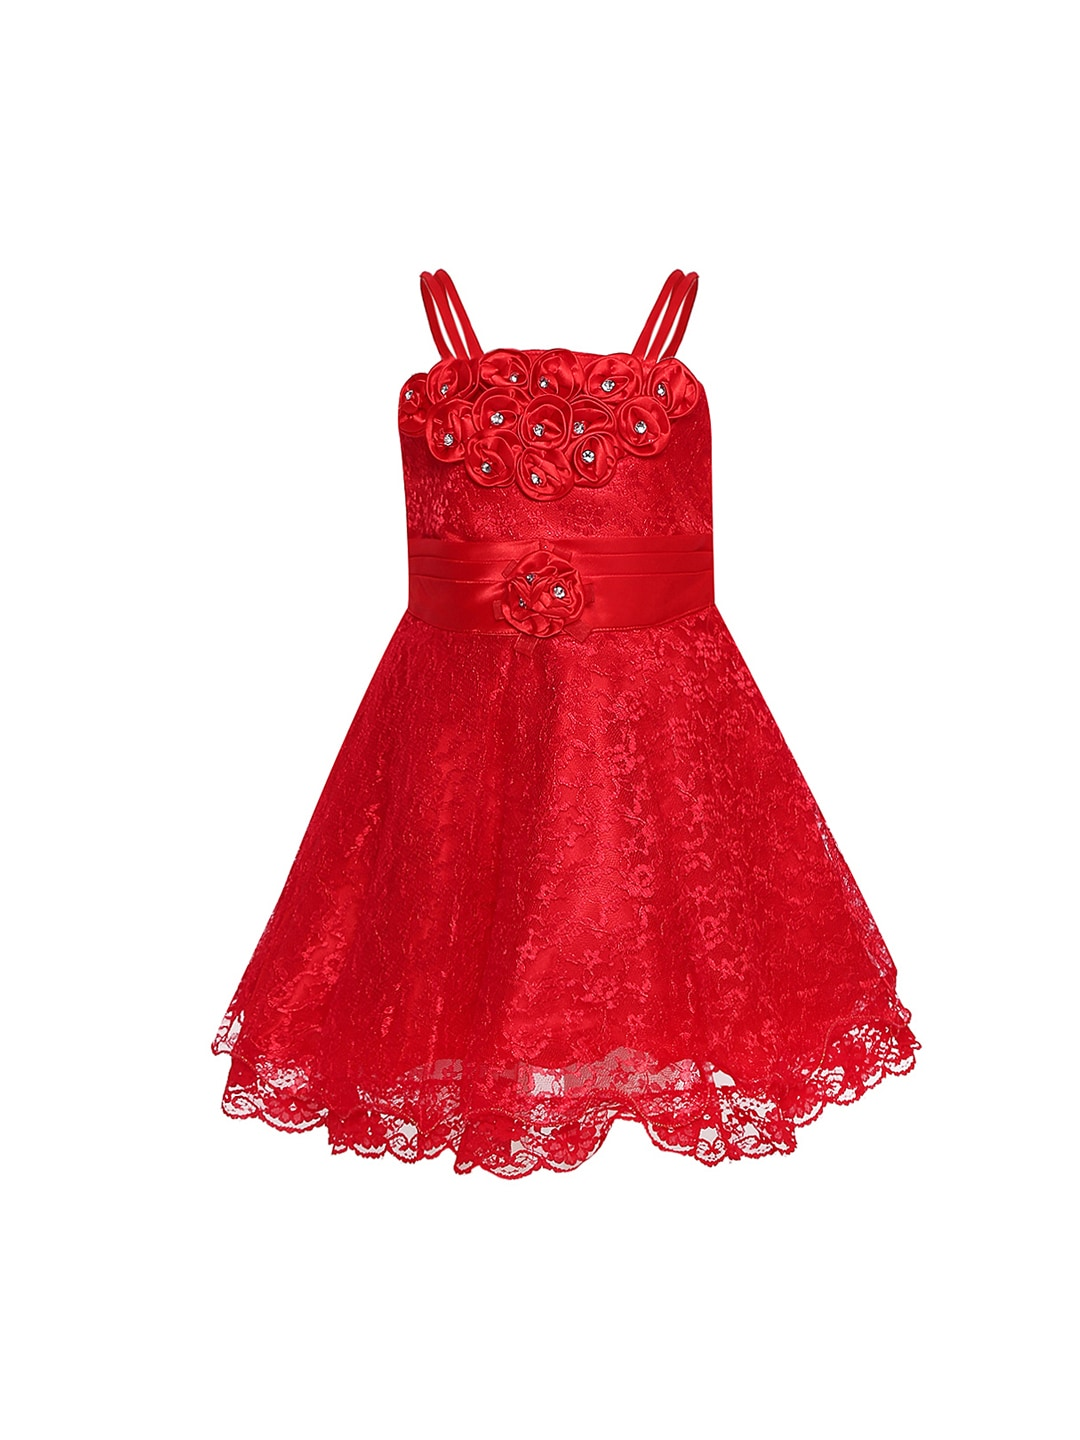 b76876b1a3b6 Girls Dresses - Buy Frocks   Gowns for Girls Online